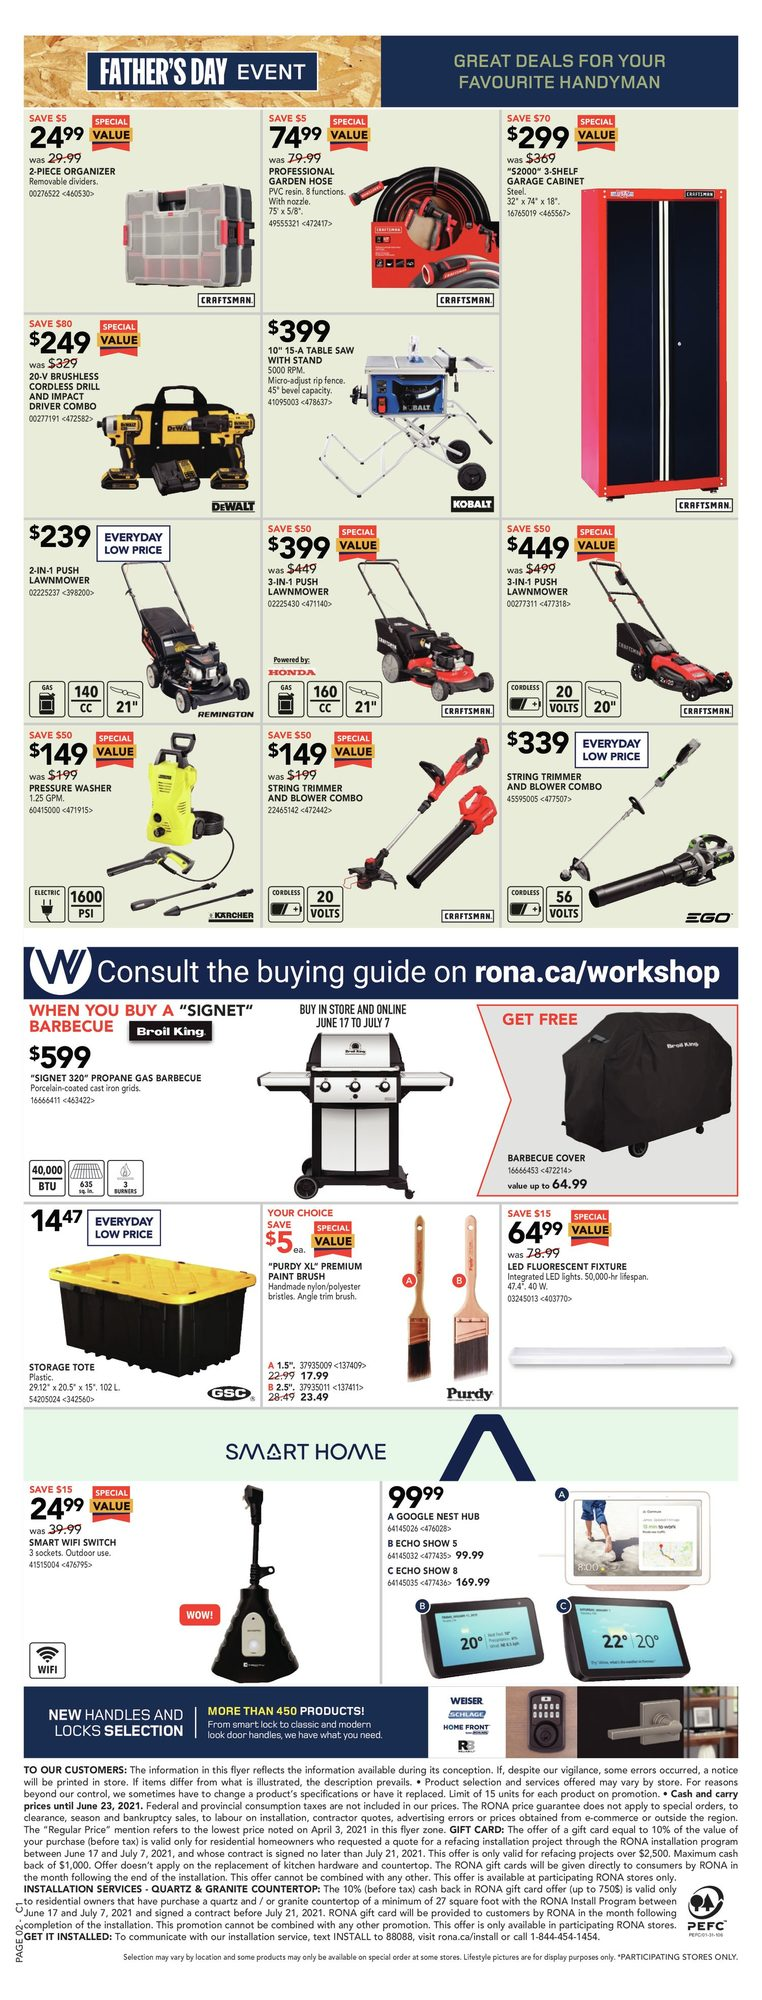 Rona - Weekly Flyer Specials - Father's Day Event - Page 2